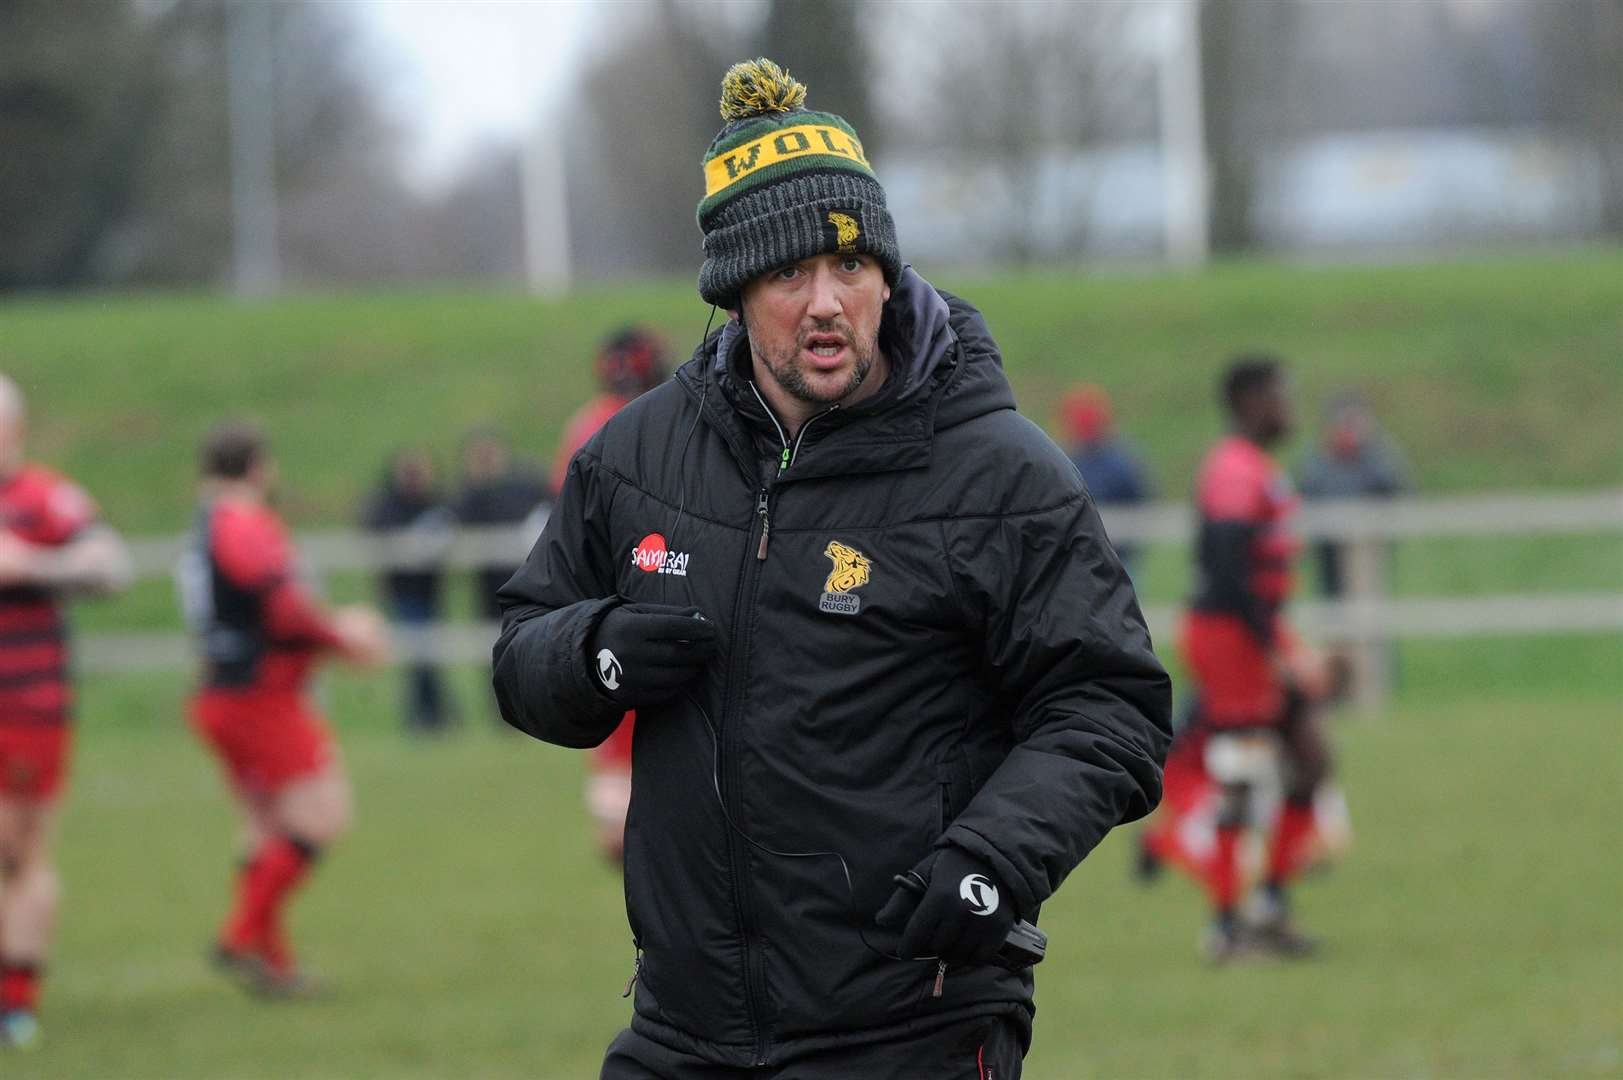 Bury St Edmunds head coach Nick Wakley is aware of the profound effect of the virus on local clubs' finances